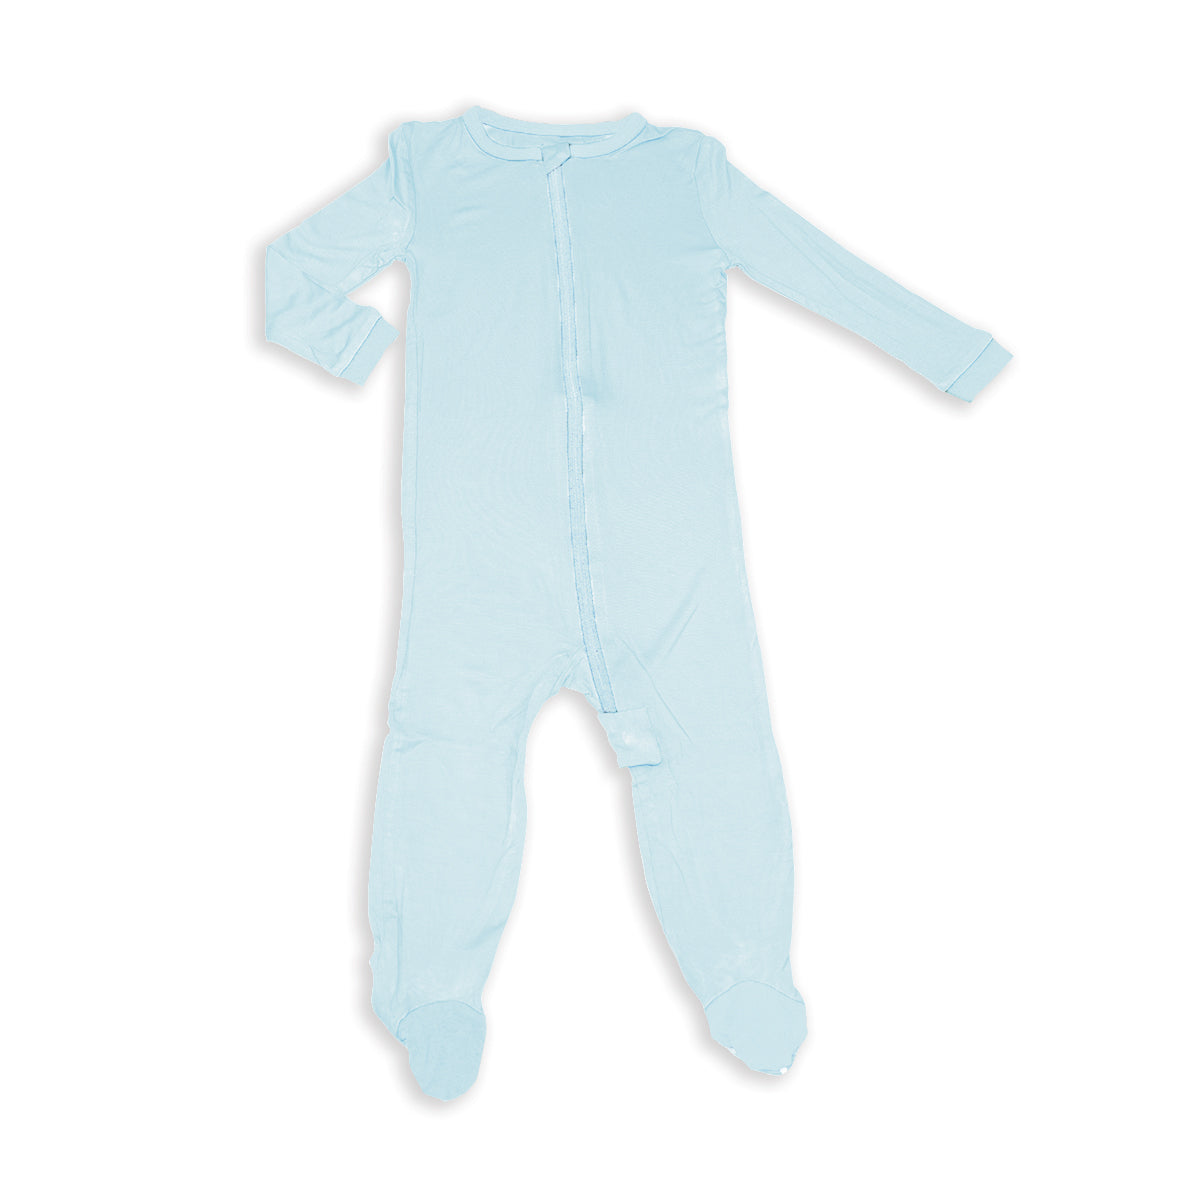 Bamboo Zip-up Footed Sleeper (Starlight)